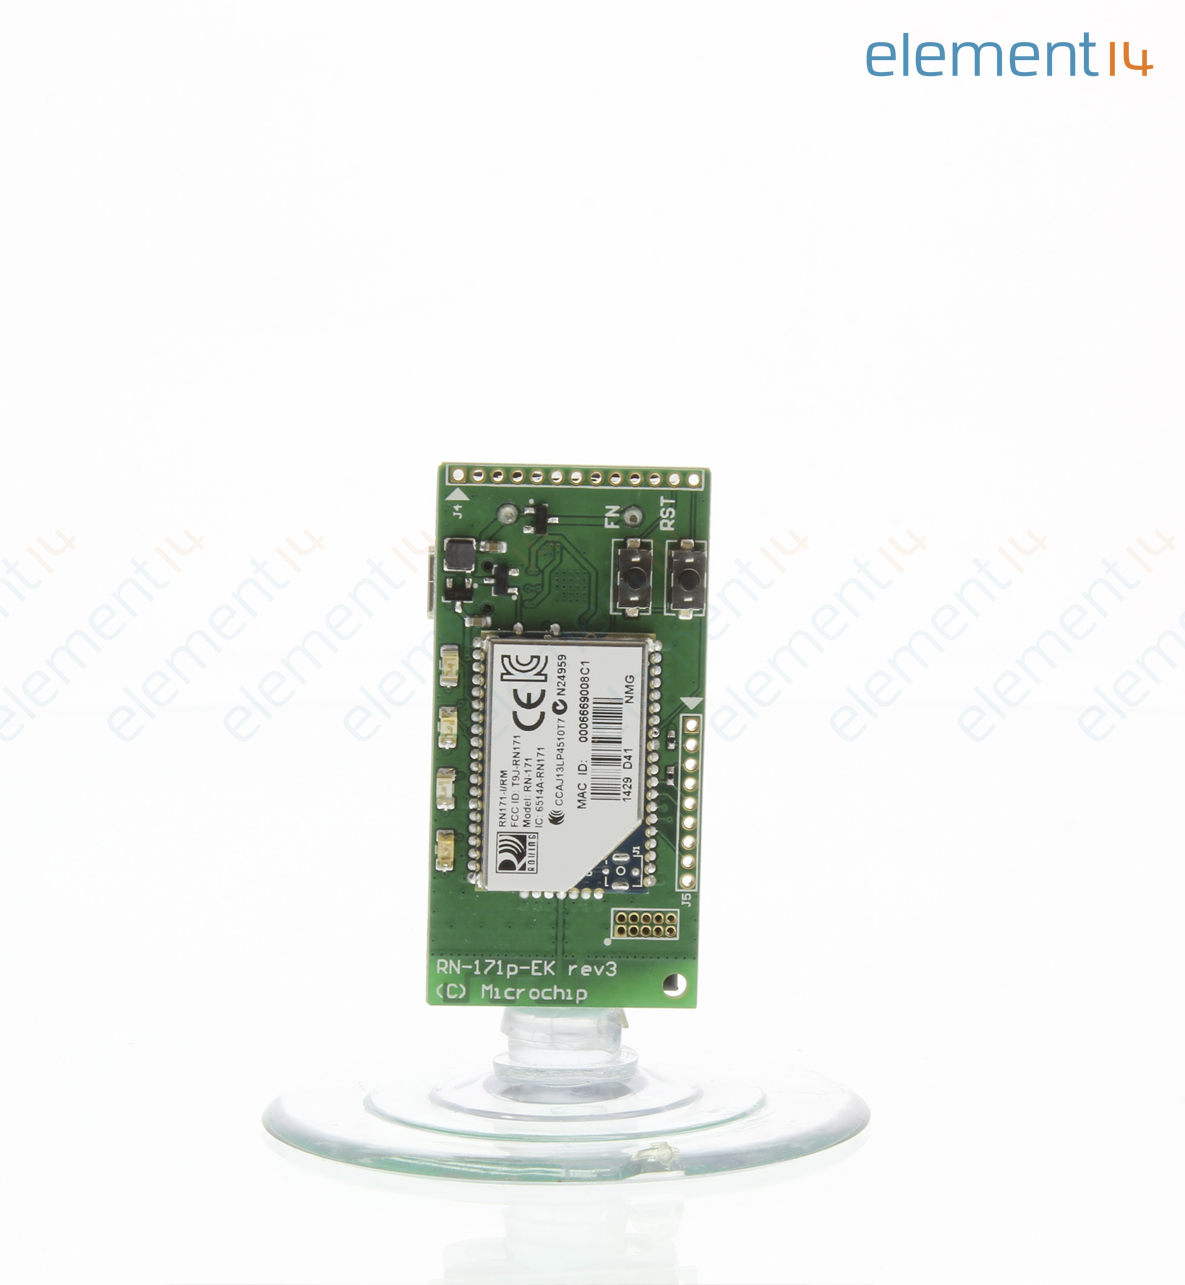 Rn 171 Ek Microchip Evaluation Kit Wifi Ultra Low Power Embedded Solid State Relay Vishay Add To Compare